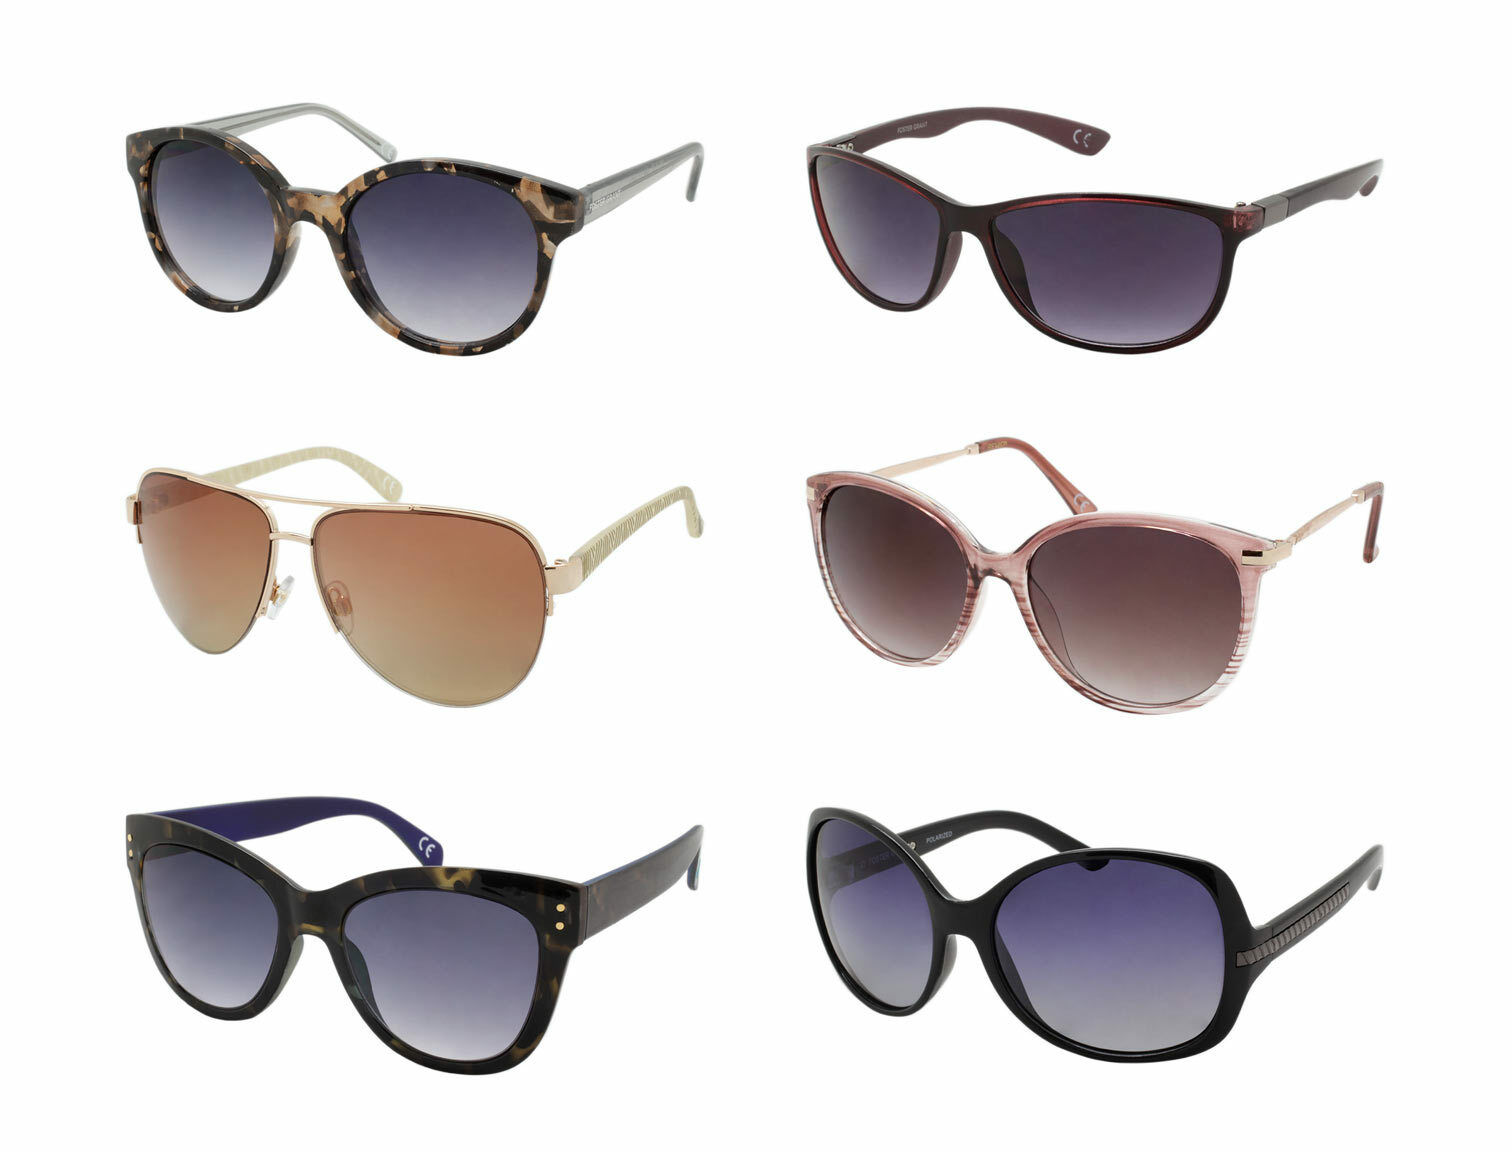 2f863abd95 Foster Grant Sunglasses Wholesale Assorted Styles for sale online